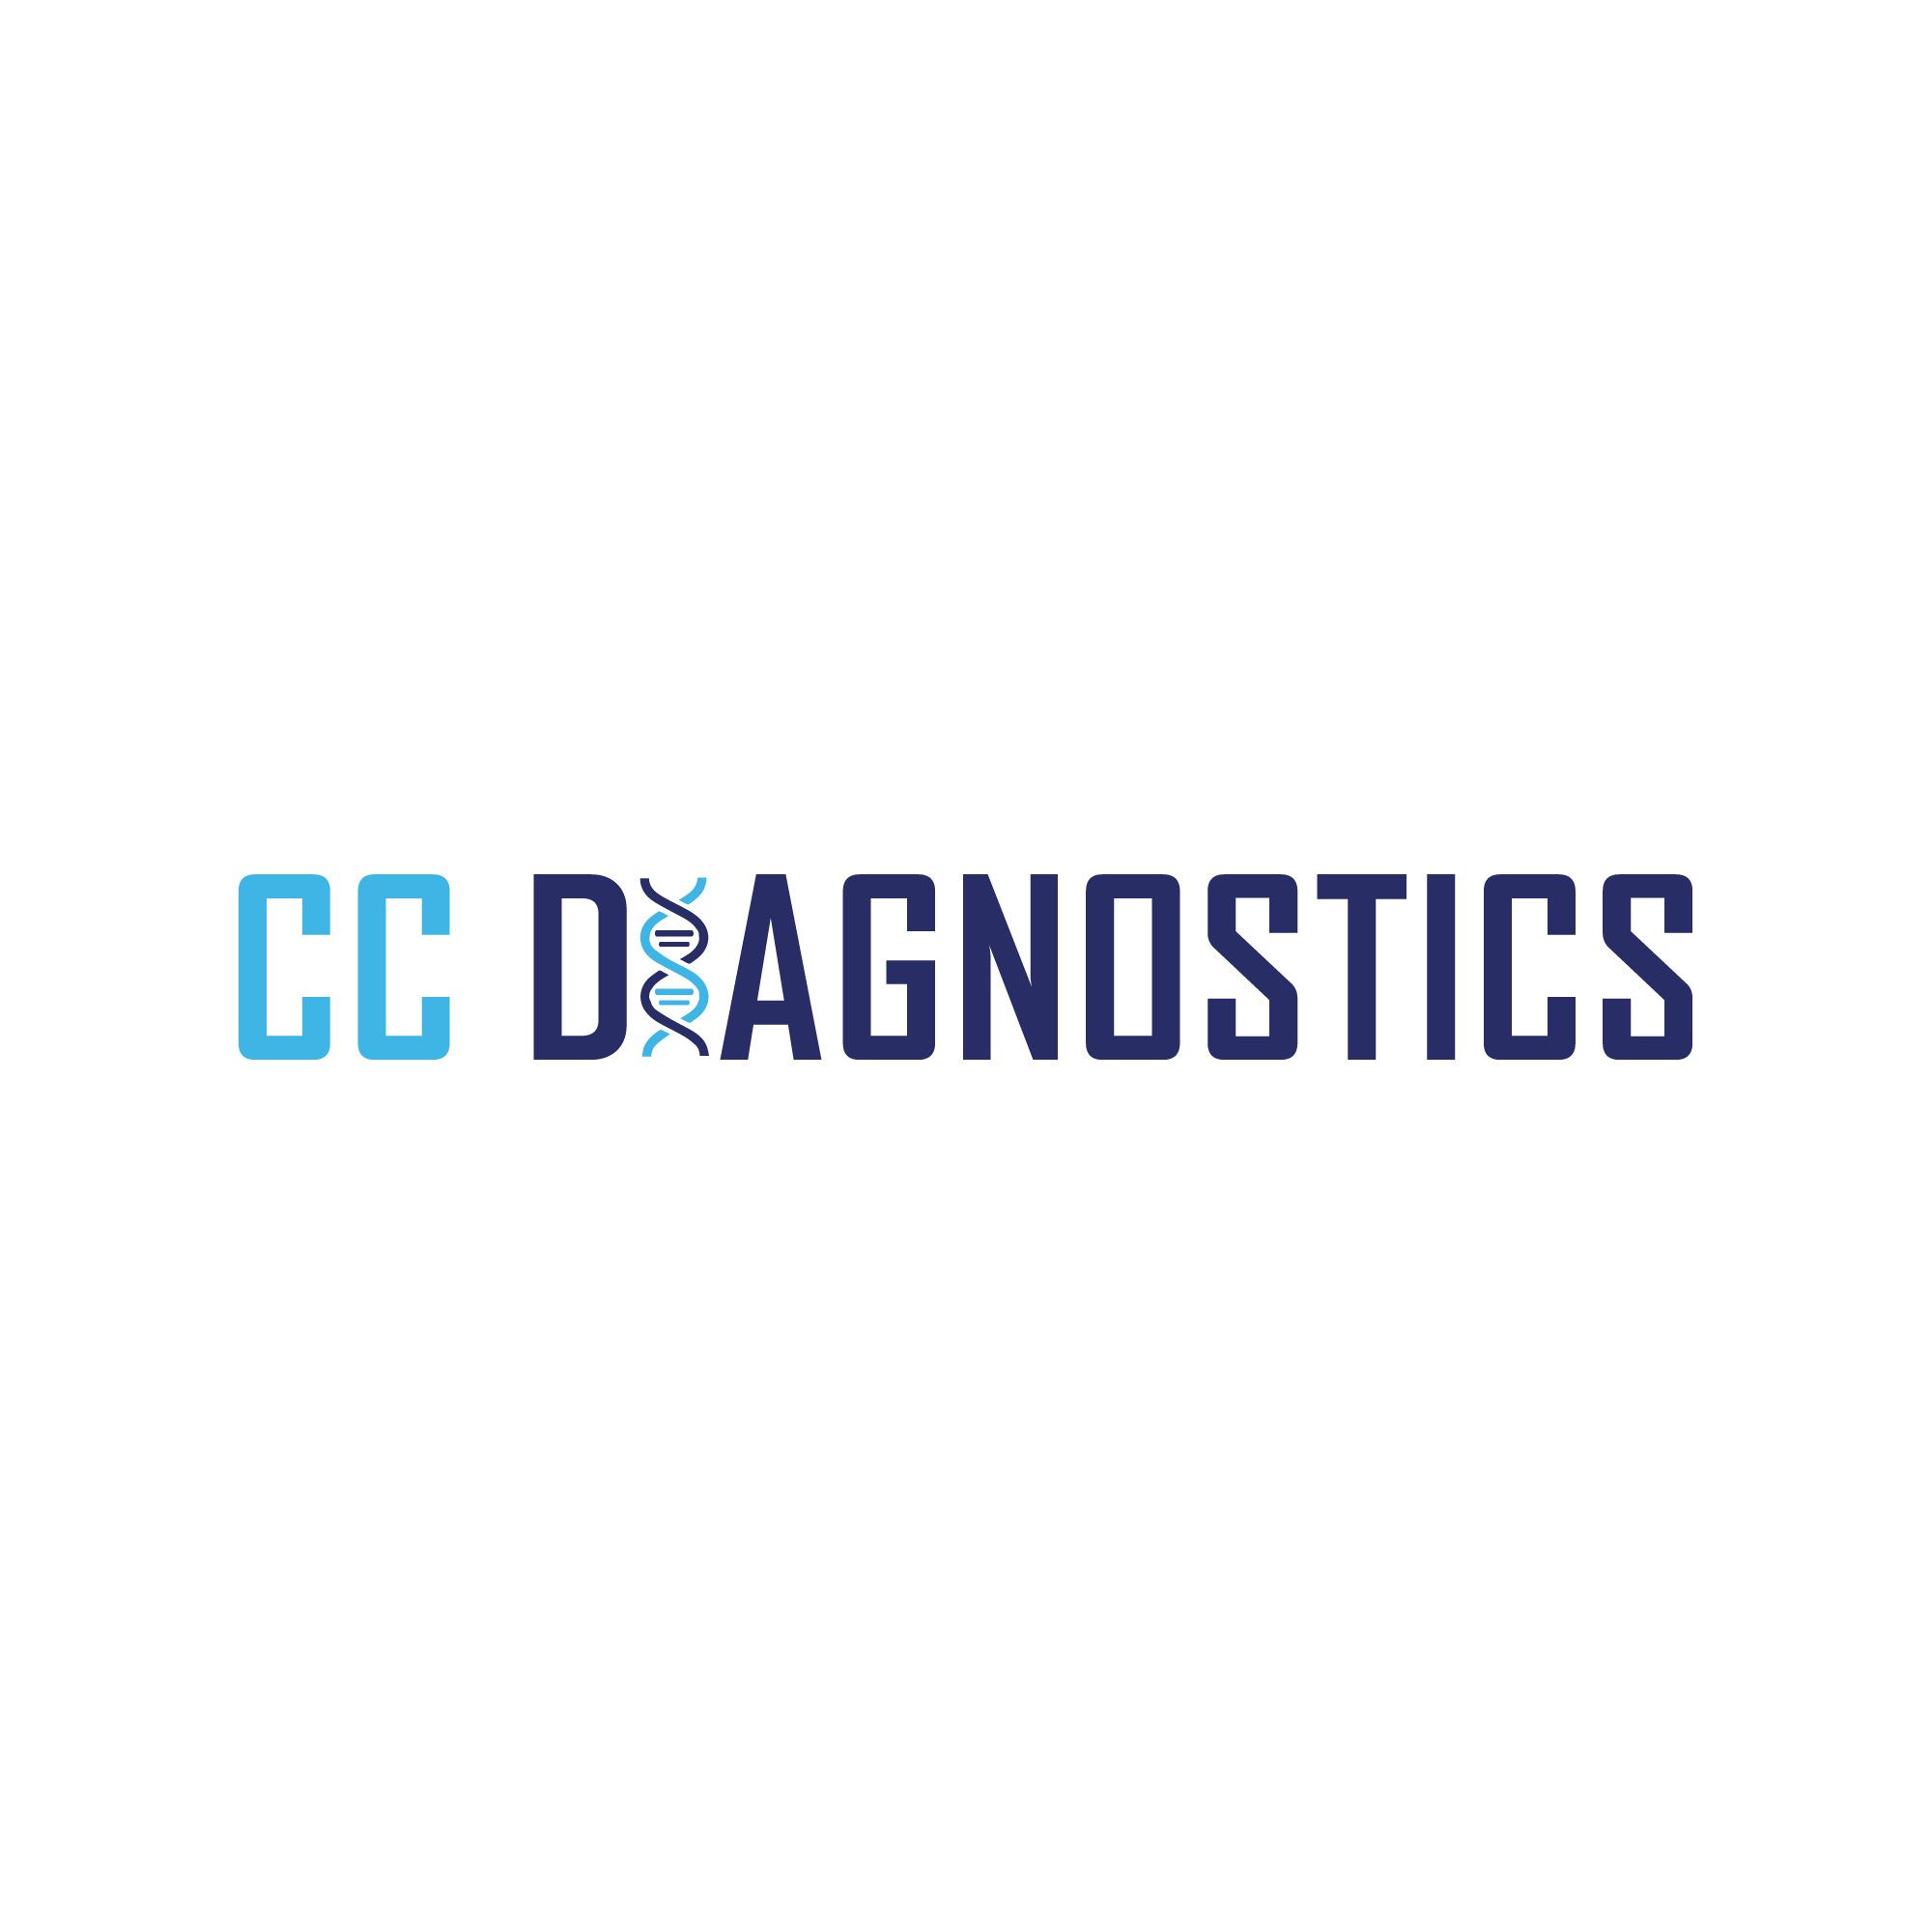 CC Diagnostics